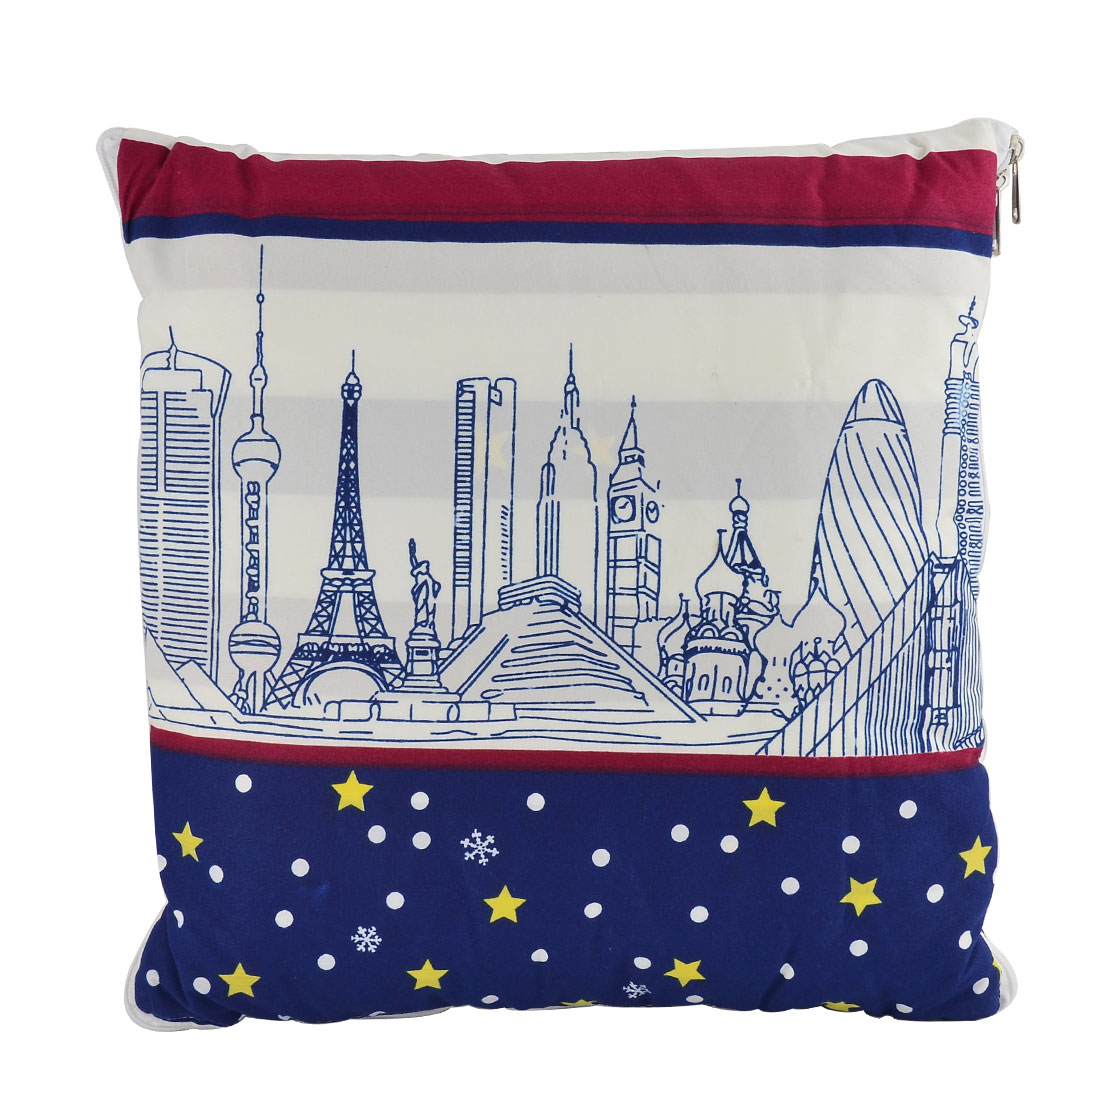 Home Office Car Cotton Blends Stars Buildings Print Zippered Pillow Cushion Quilt Dual 40 x 40cm